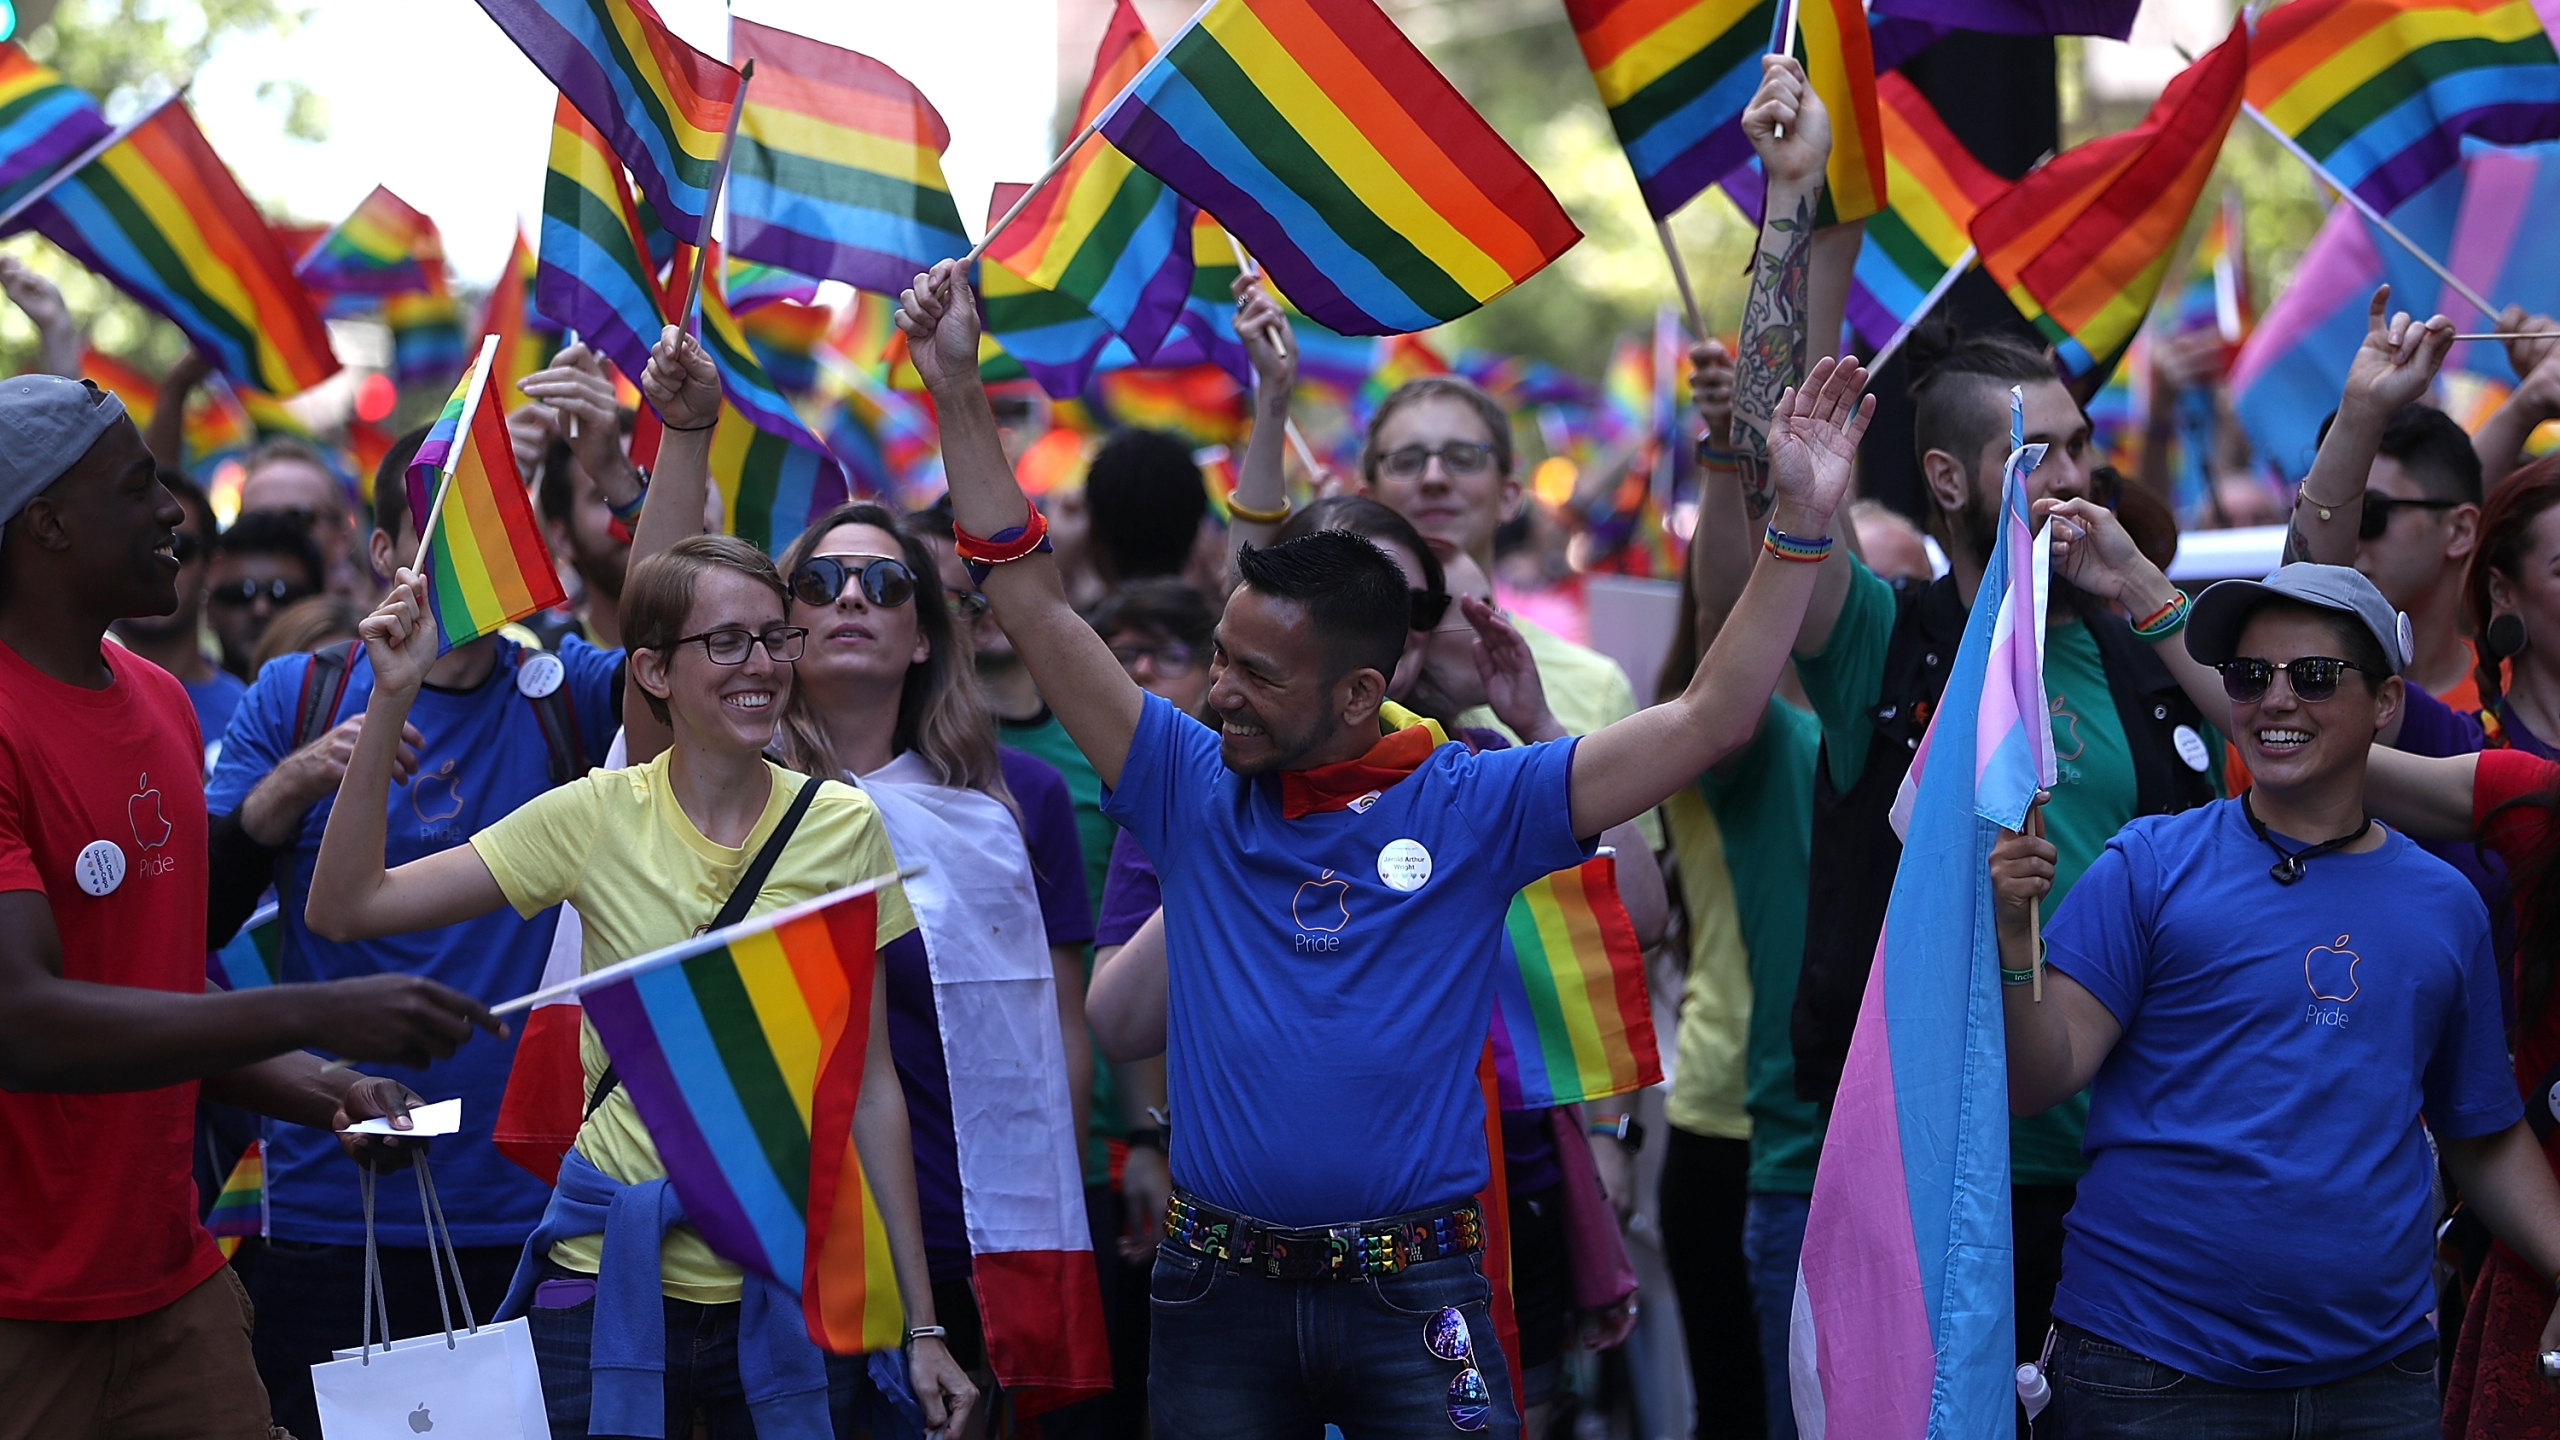 Parade participants wave pride flags during the 2016 San Francisco Pride Parade on June 26, 2016. (Credit: Justin Sullivan / Getty Images)